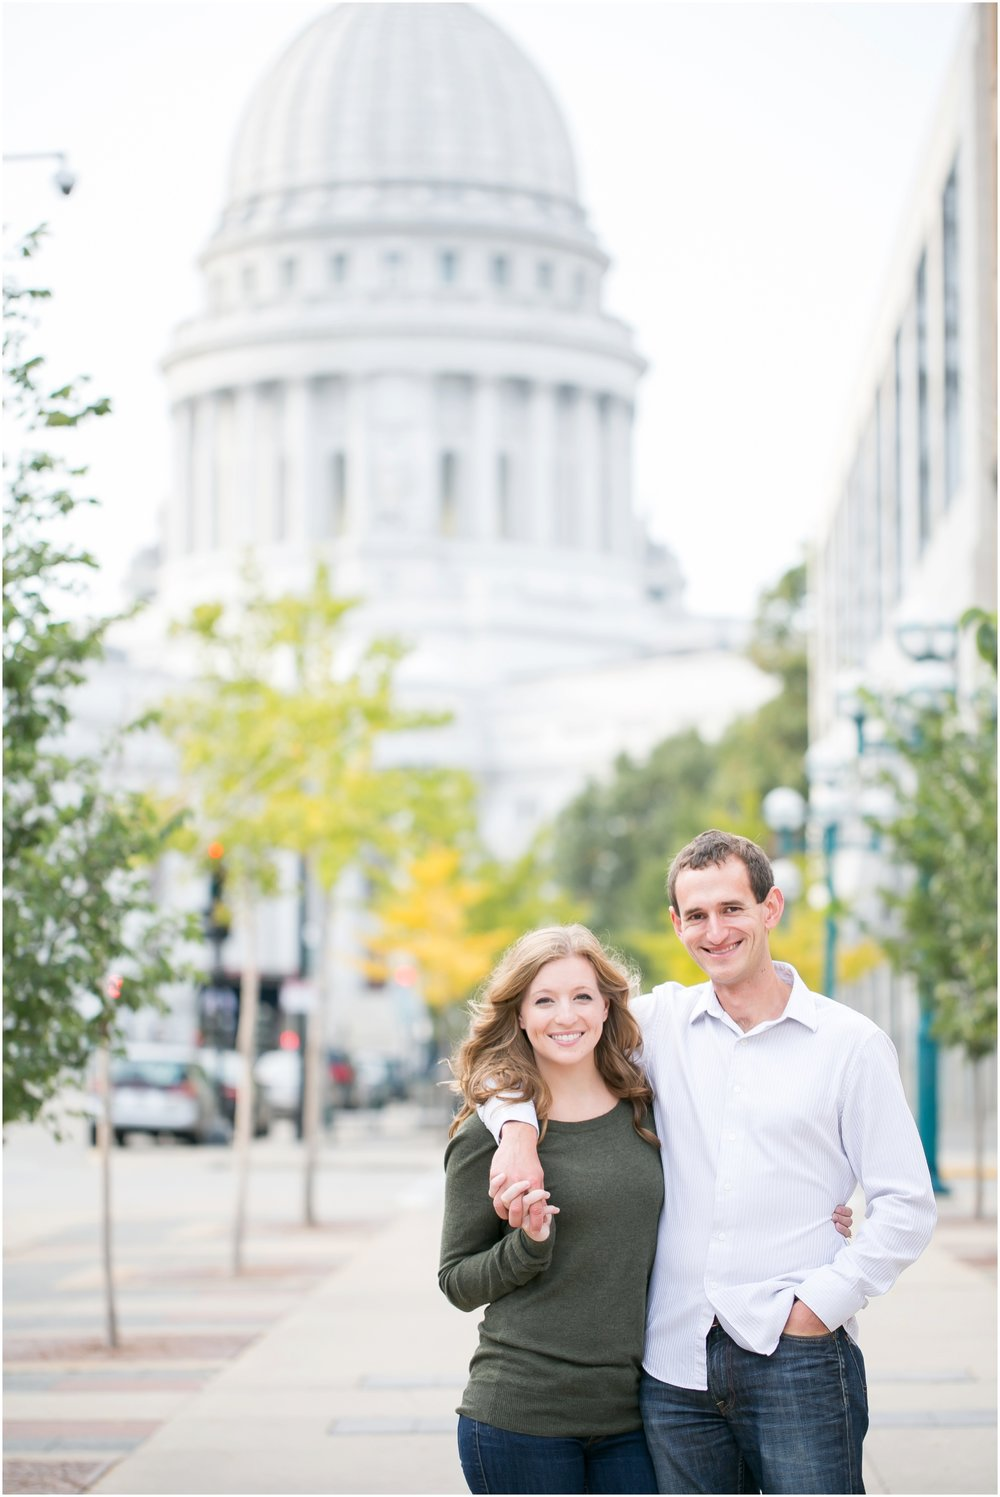 Downtown_Madison_Wisconsin_Engagment_Session_1967.jpg